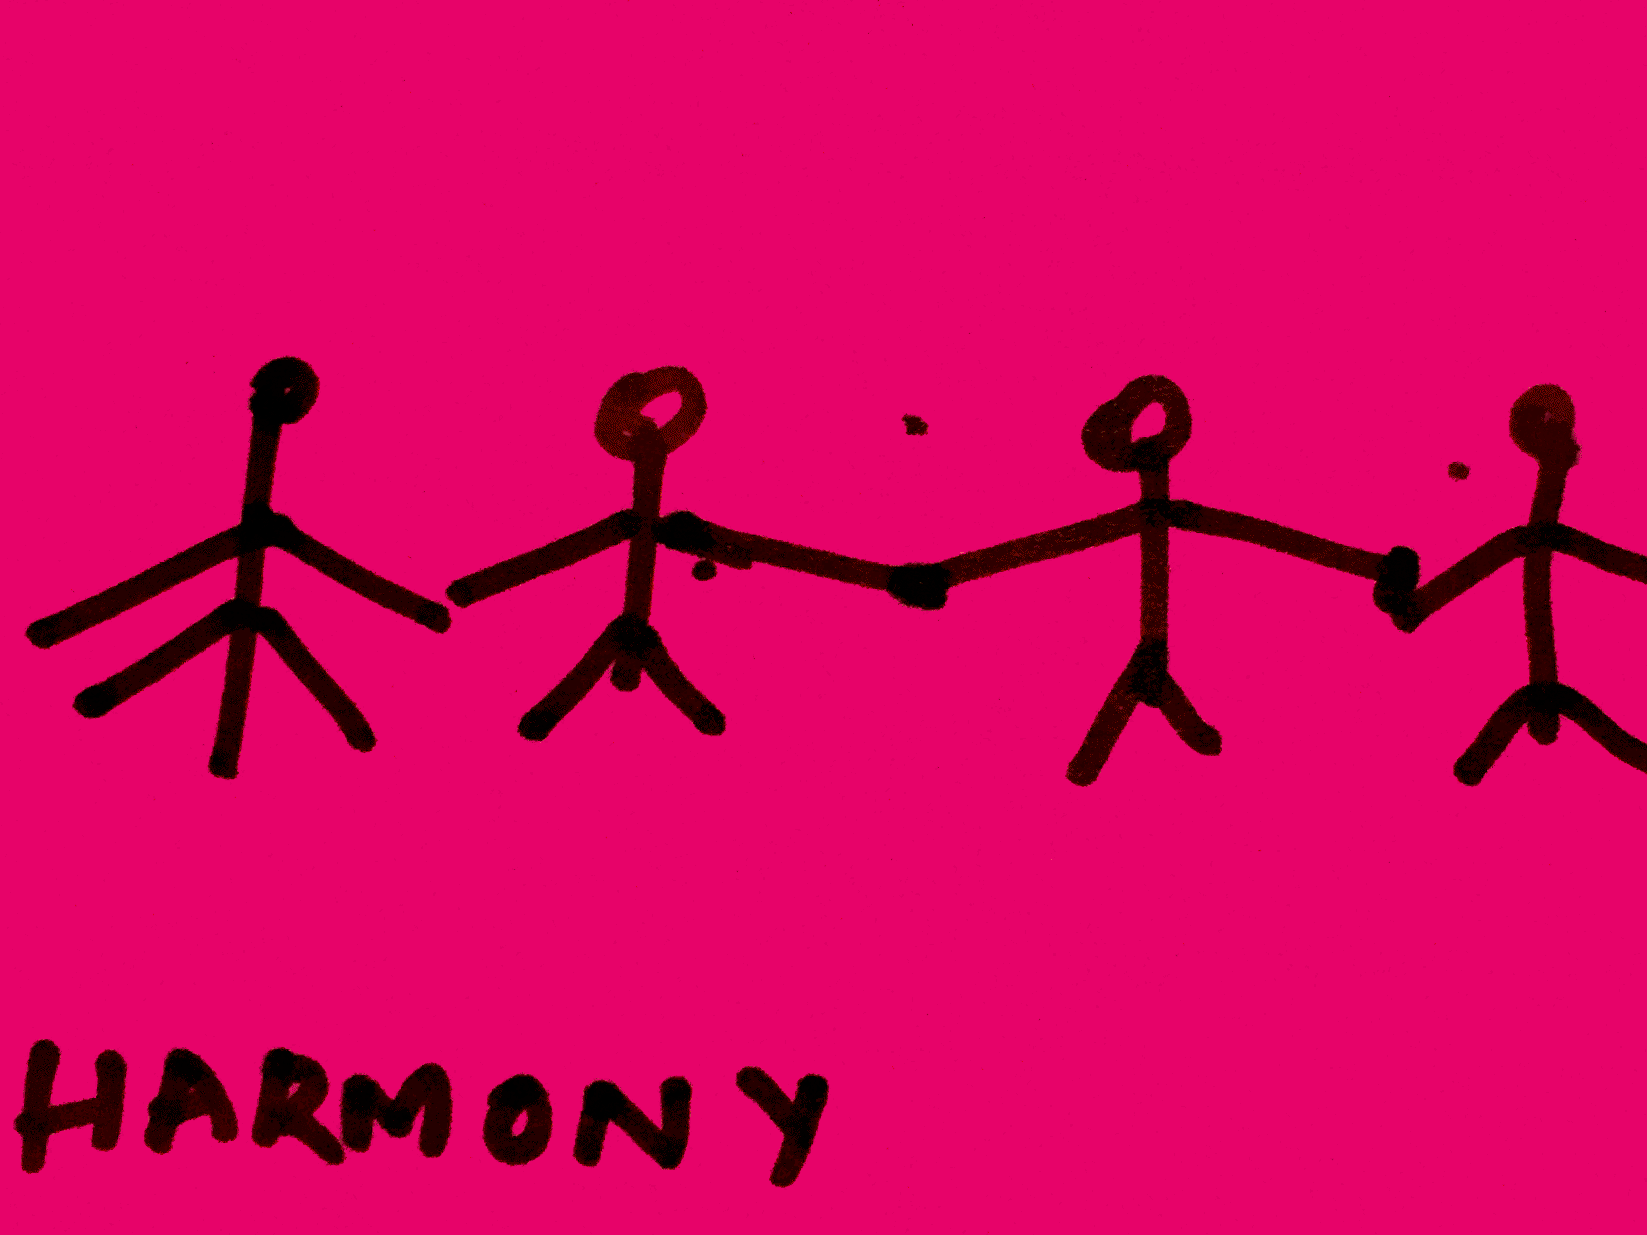 Harmony StrengthsFinder Singapore People Holding Hands